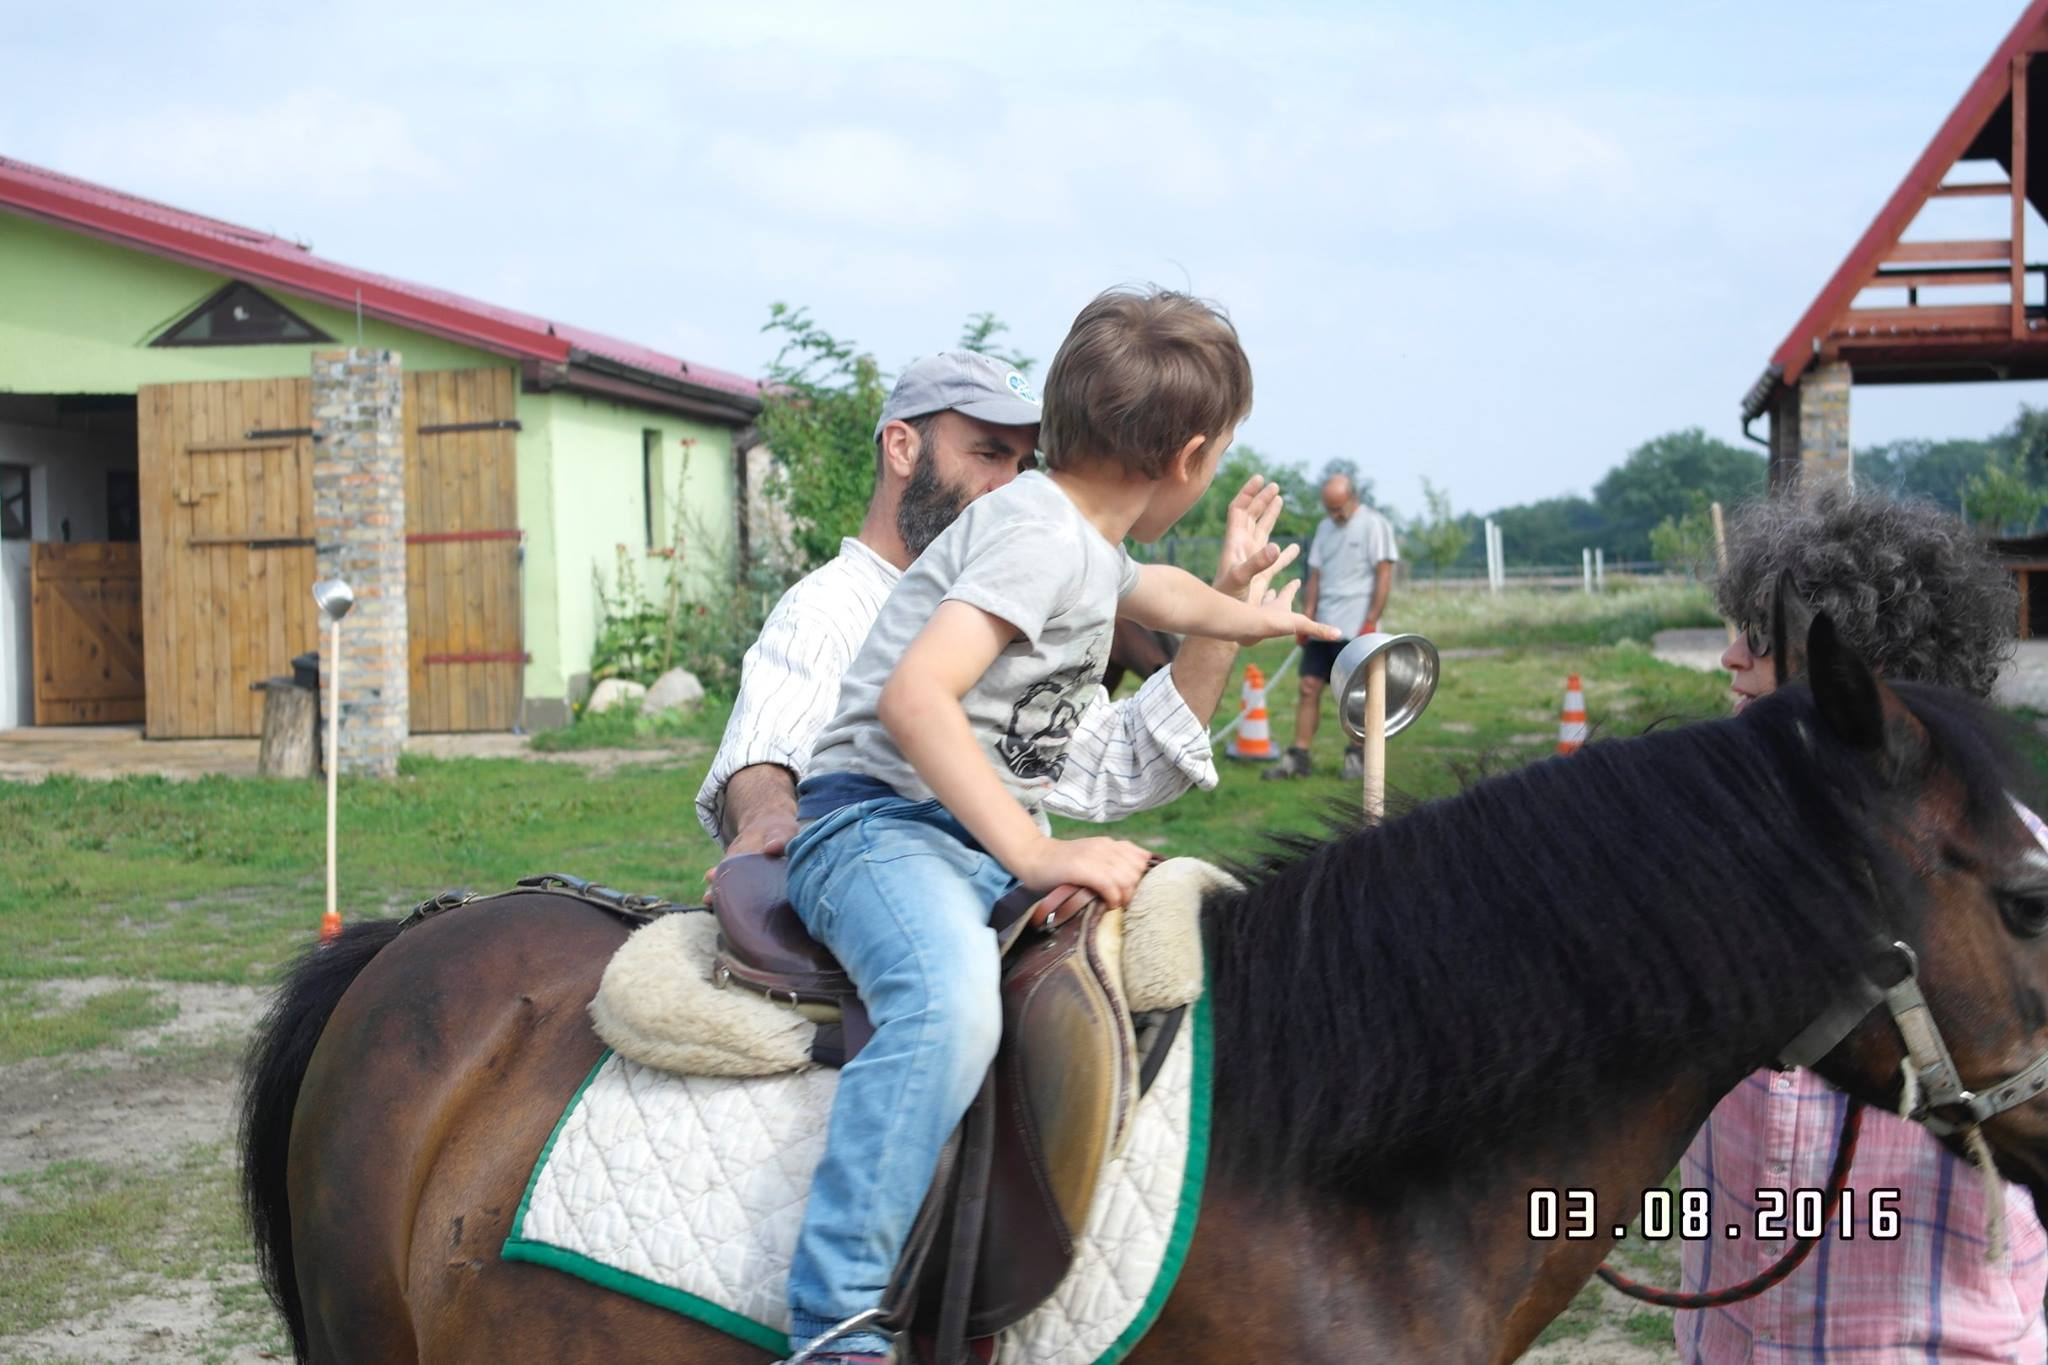 playing on horses